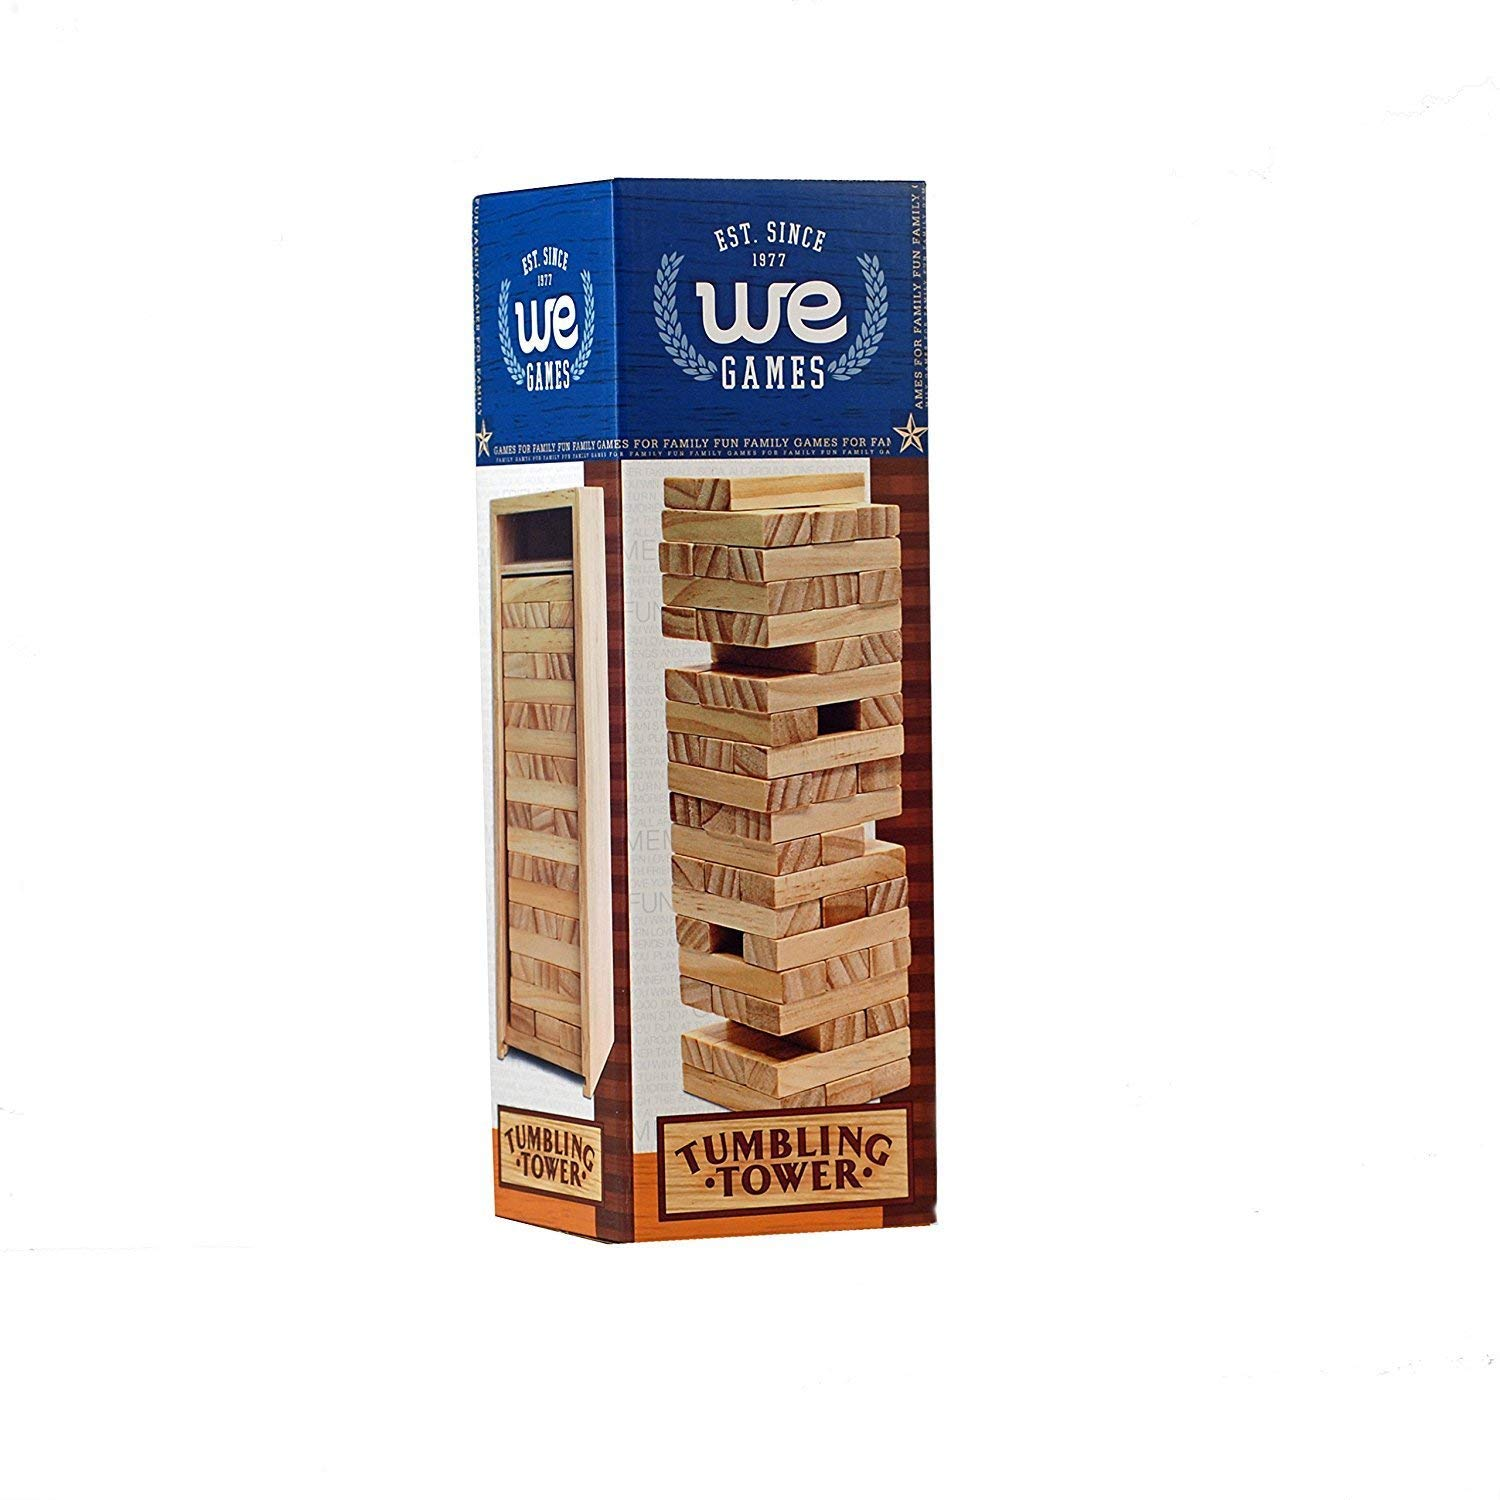 WE Games Custom Engraved Wedding Guest Book Wood Block Stacking Tower That Tumbles Down When You Play (12 Inch When Packaged)